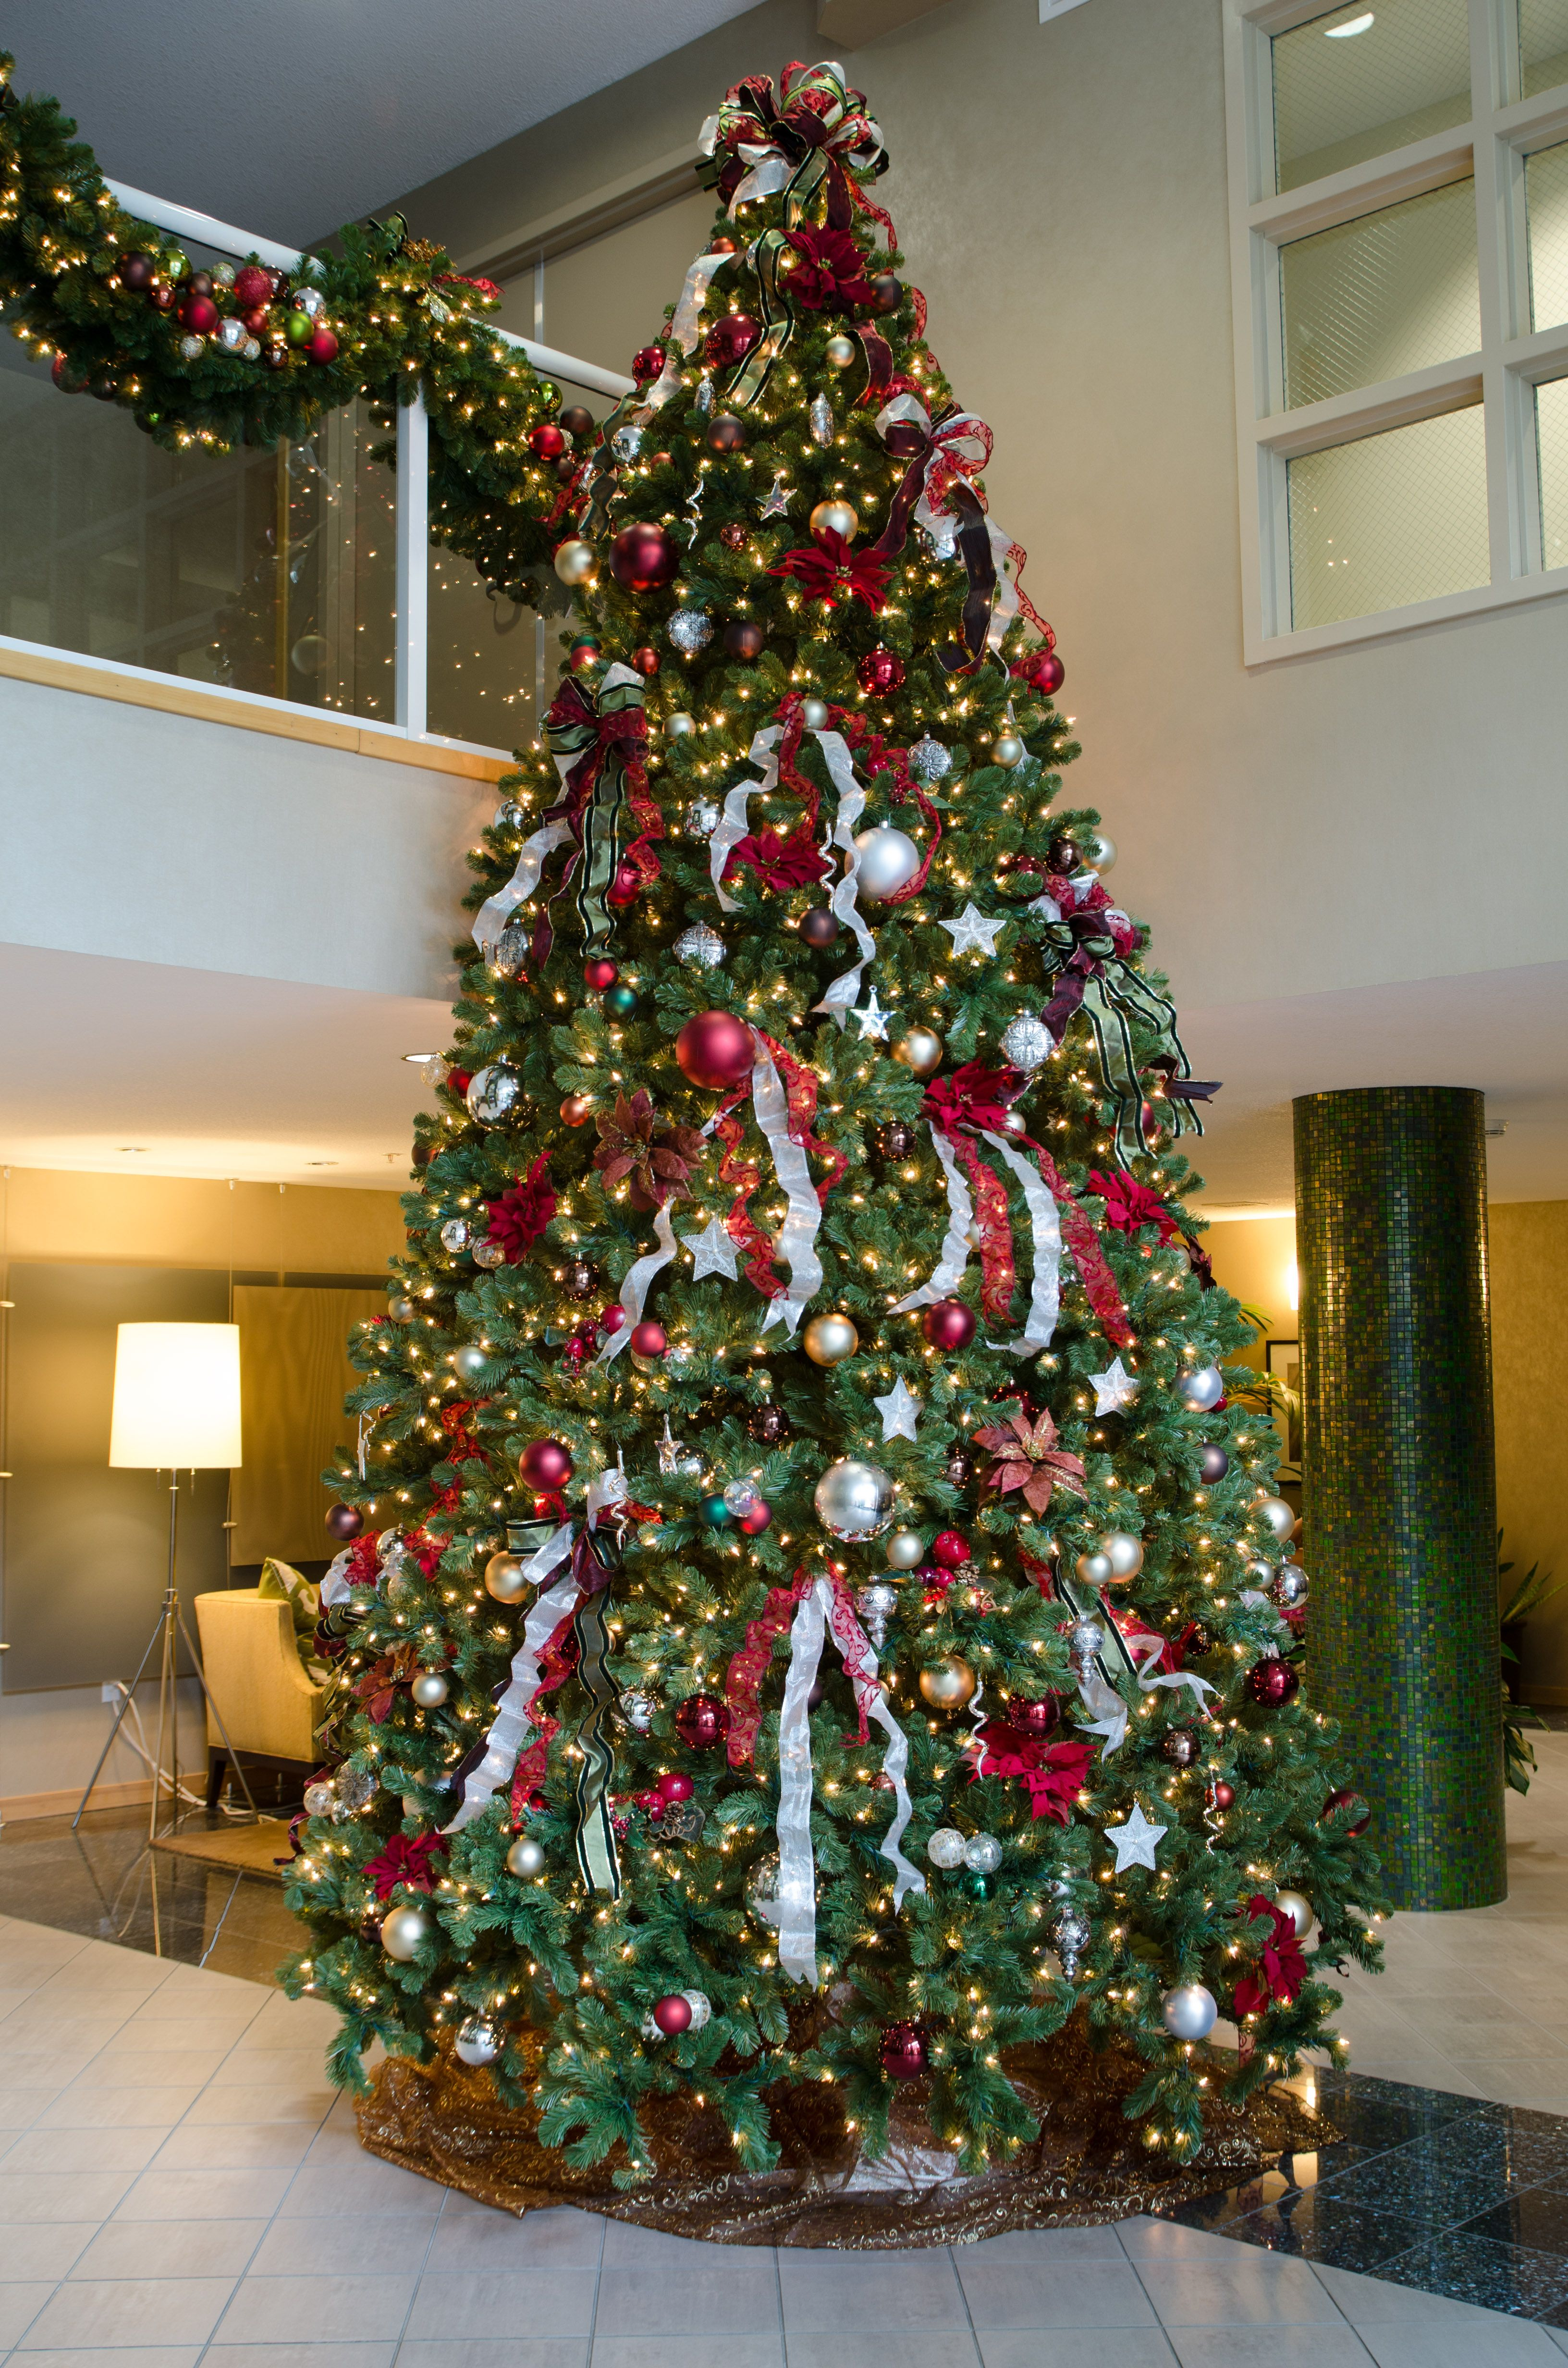 14 foot artificial tree designed by Deko for a high rise ...